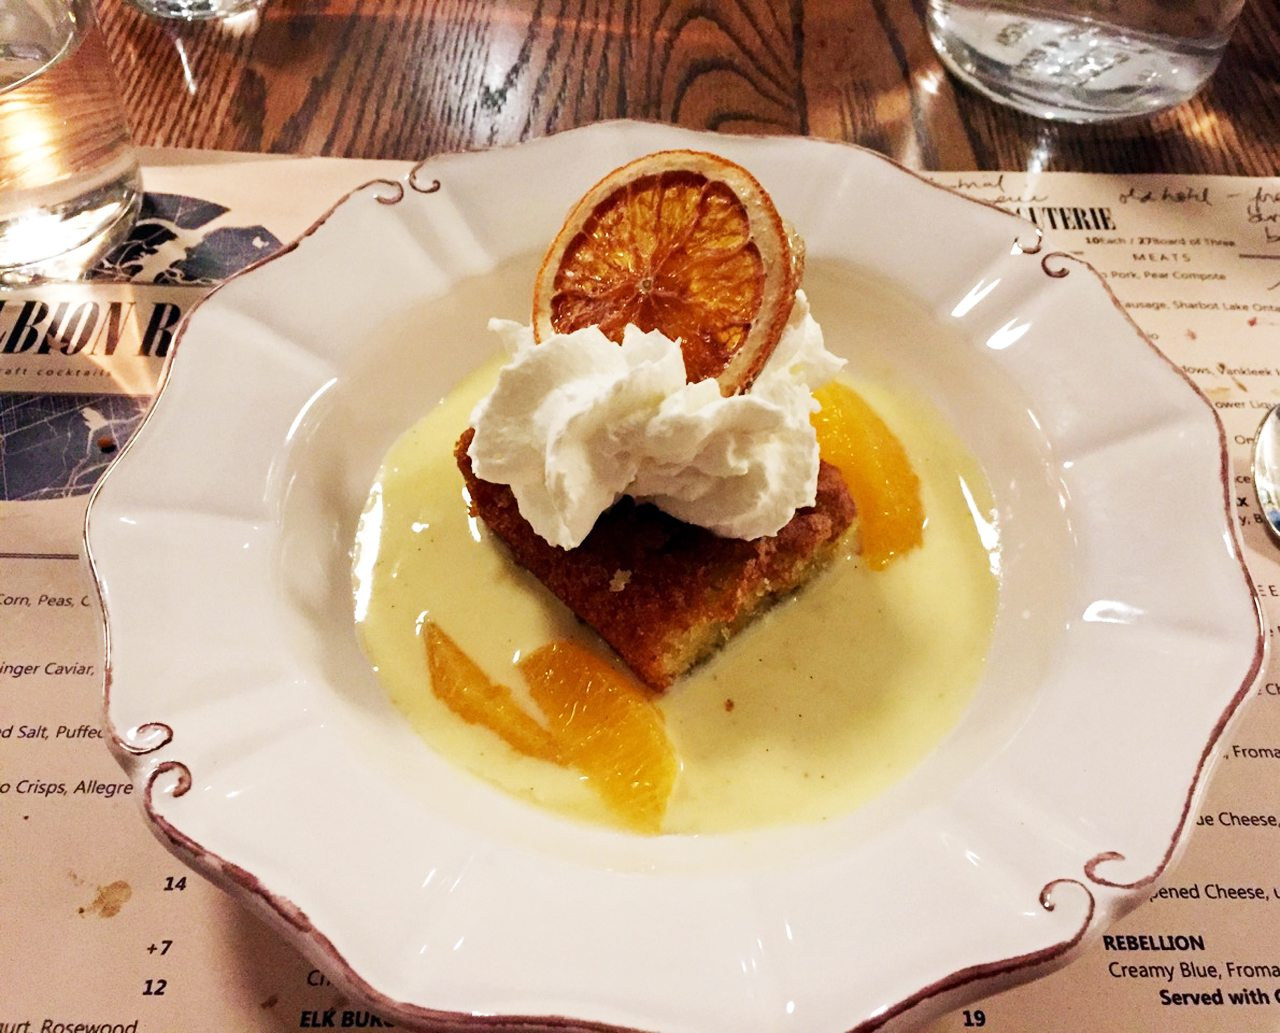 The Albion Rooms' olive oil and orange cake with cream and candied fruit